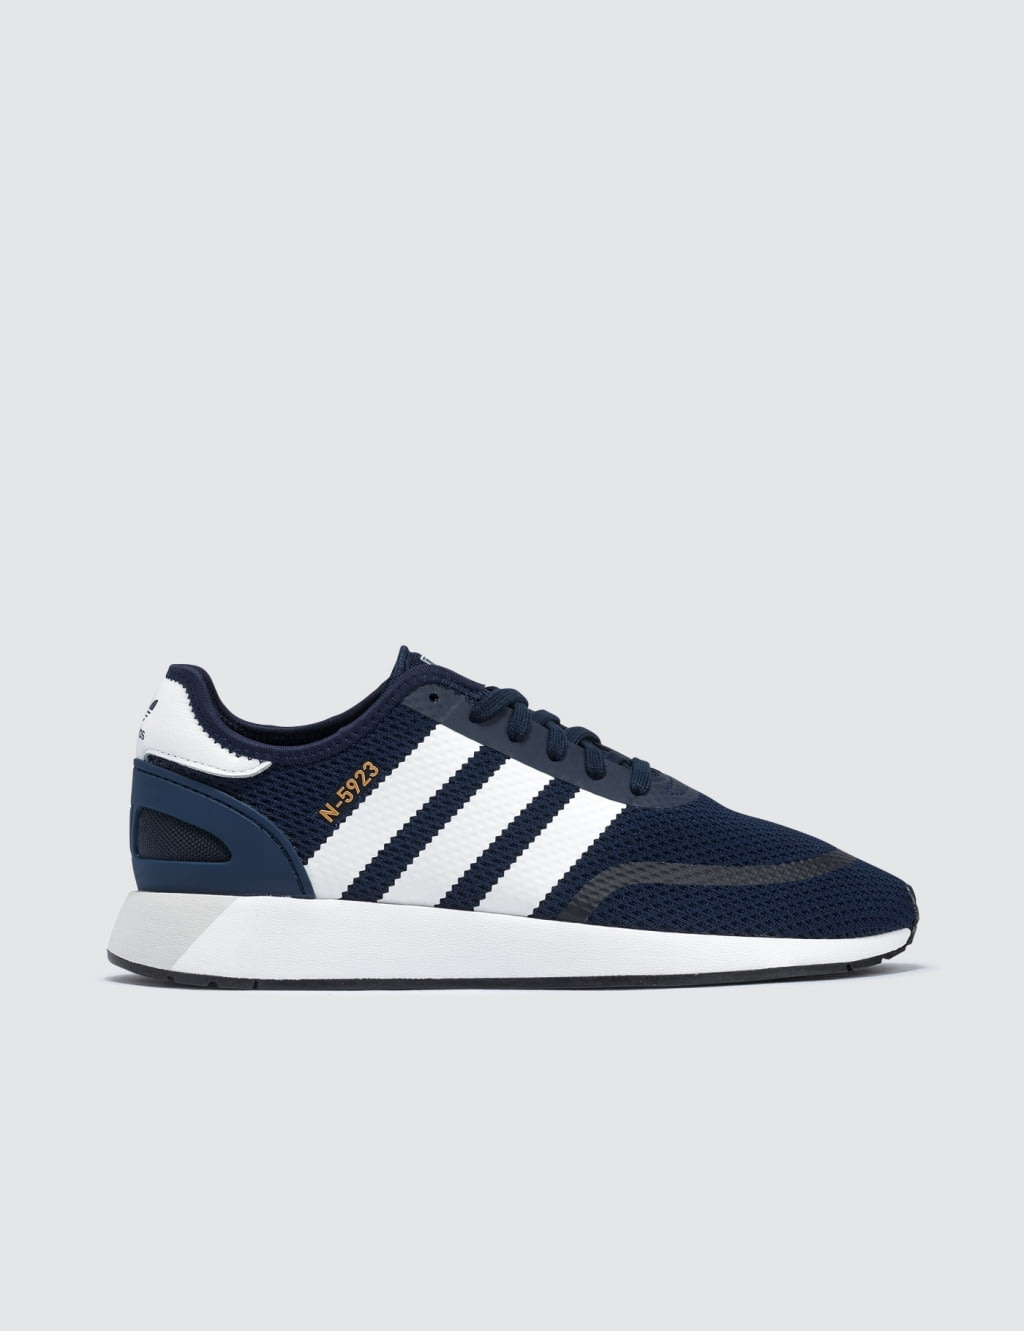 466c4953fd4ad shopping adidas originals iniki runner cls adidas originals iniki runner  cls 38332 55644